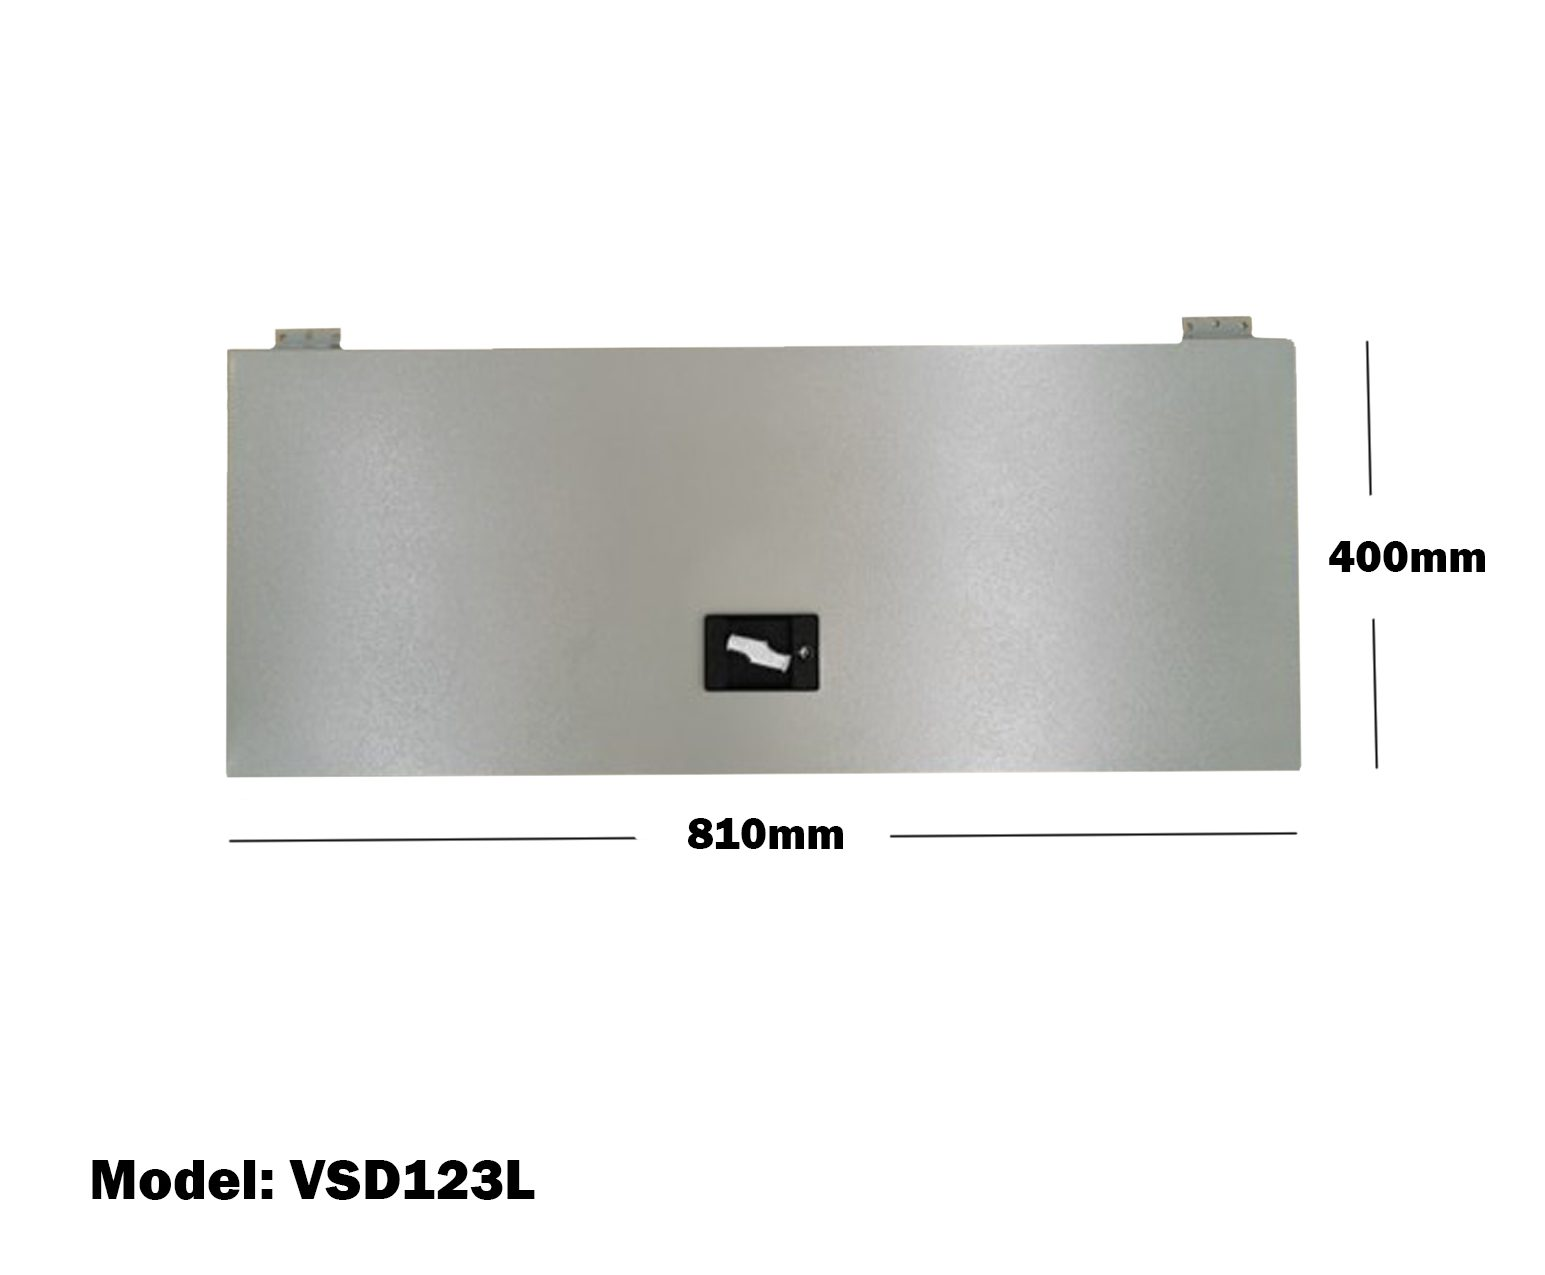 Van Shelving 810mm(L) x 400mm(H) Lockable Door Double Tier For Van Shelving System VSD123L